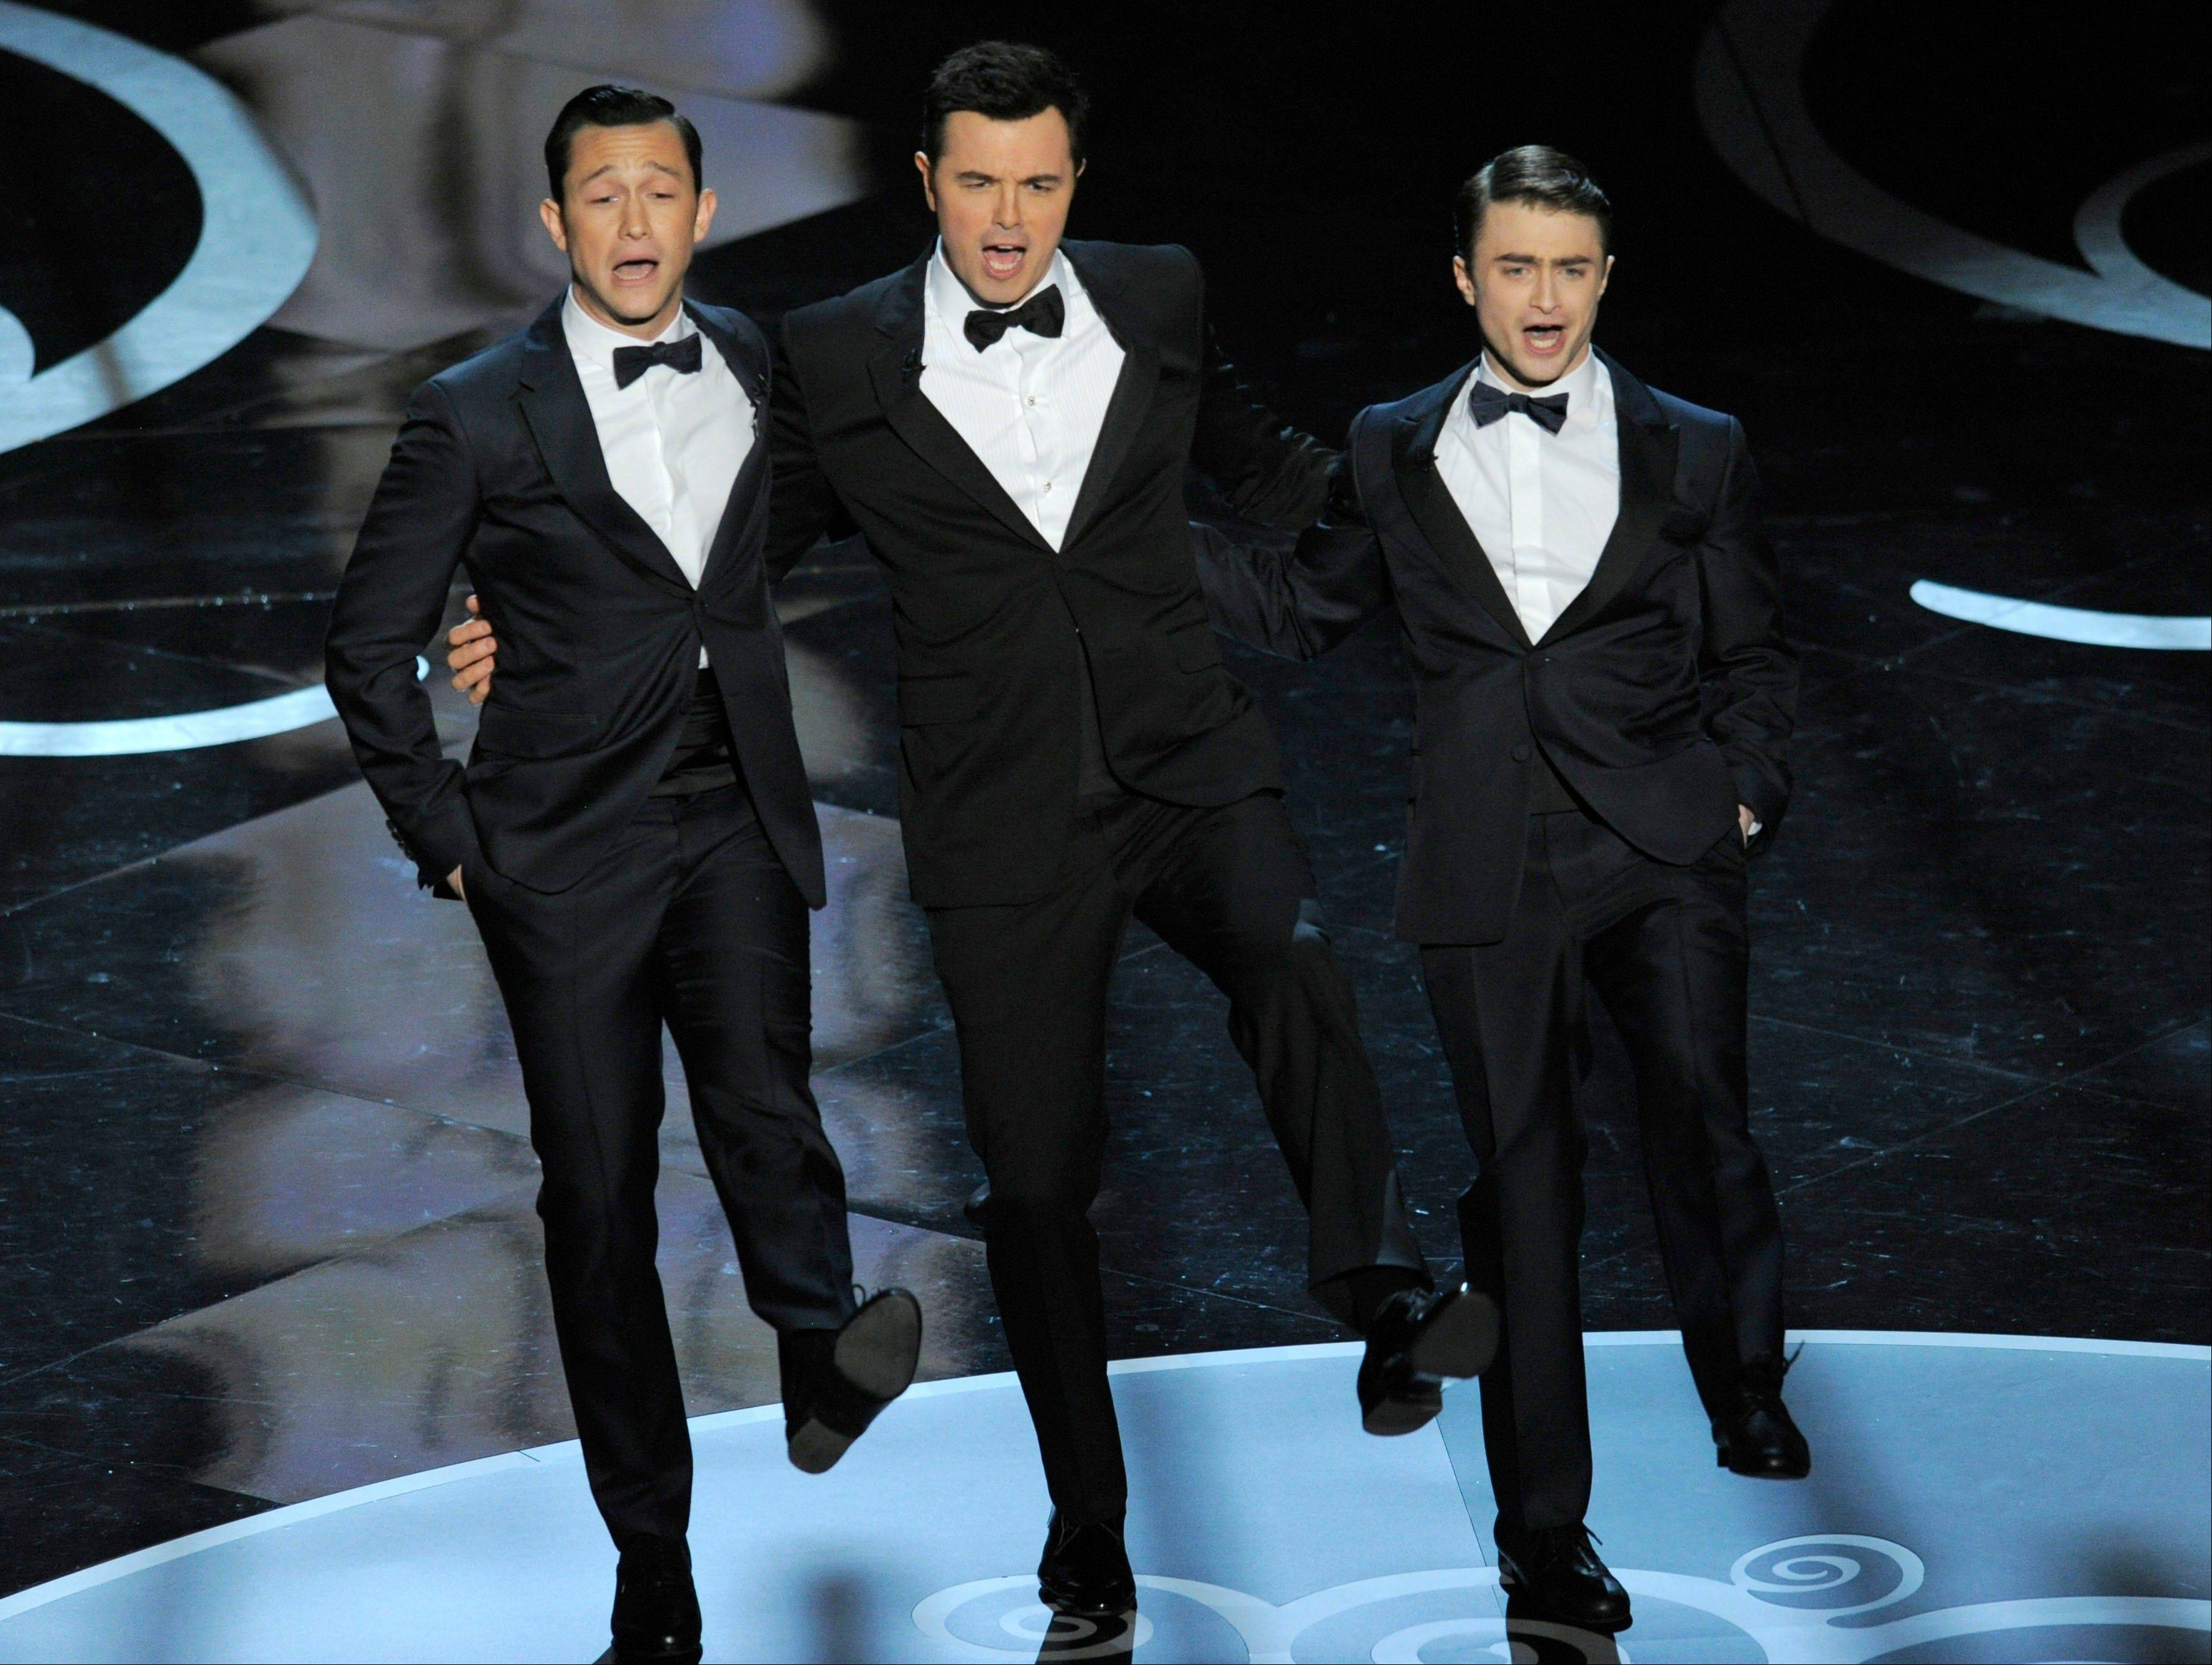 Actors, from left, Joseph Gordon-Levitt, host Seth MacFarlane and Daniel Radcliffe perform during the Oscars at the Dolby Theatre on Sunday Feb. 24, 2013, in Los Angeles.